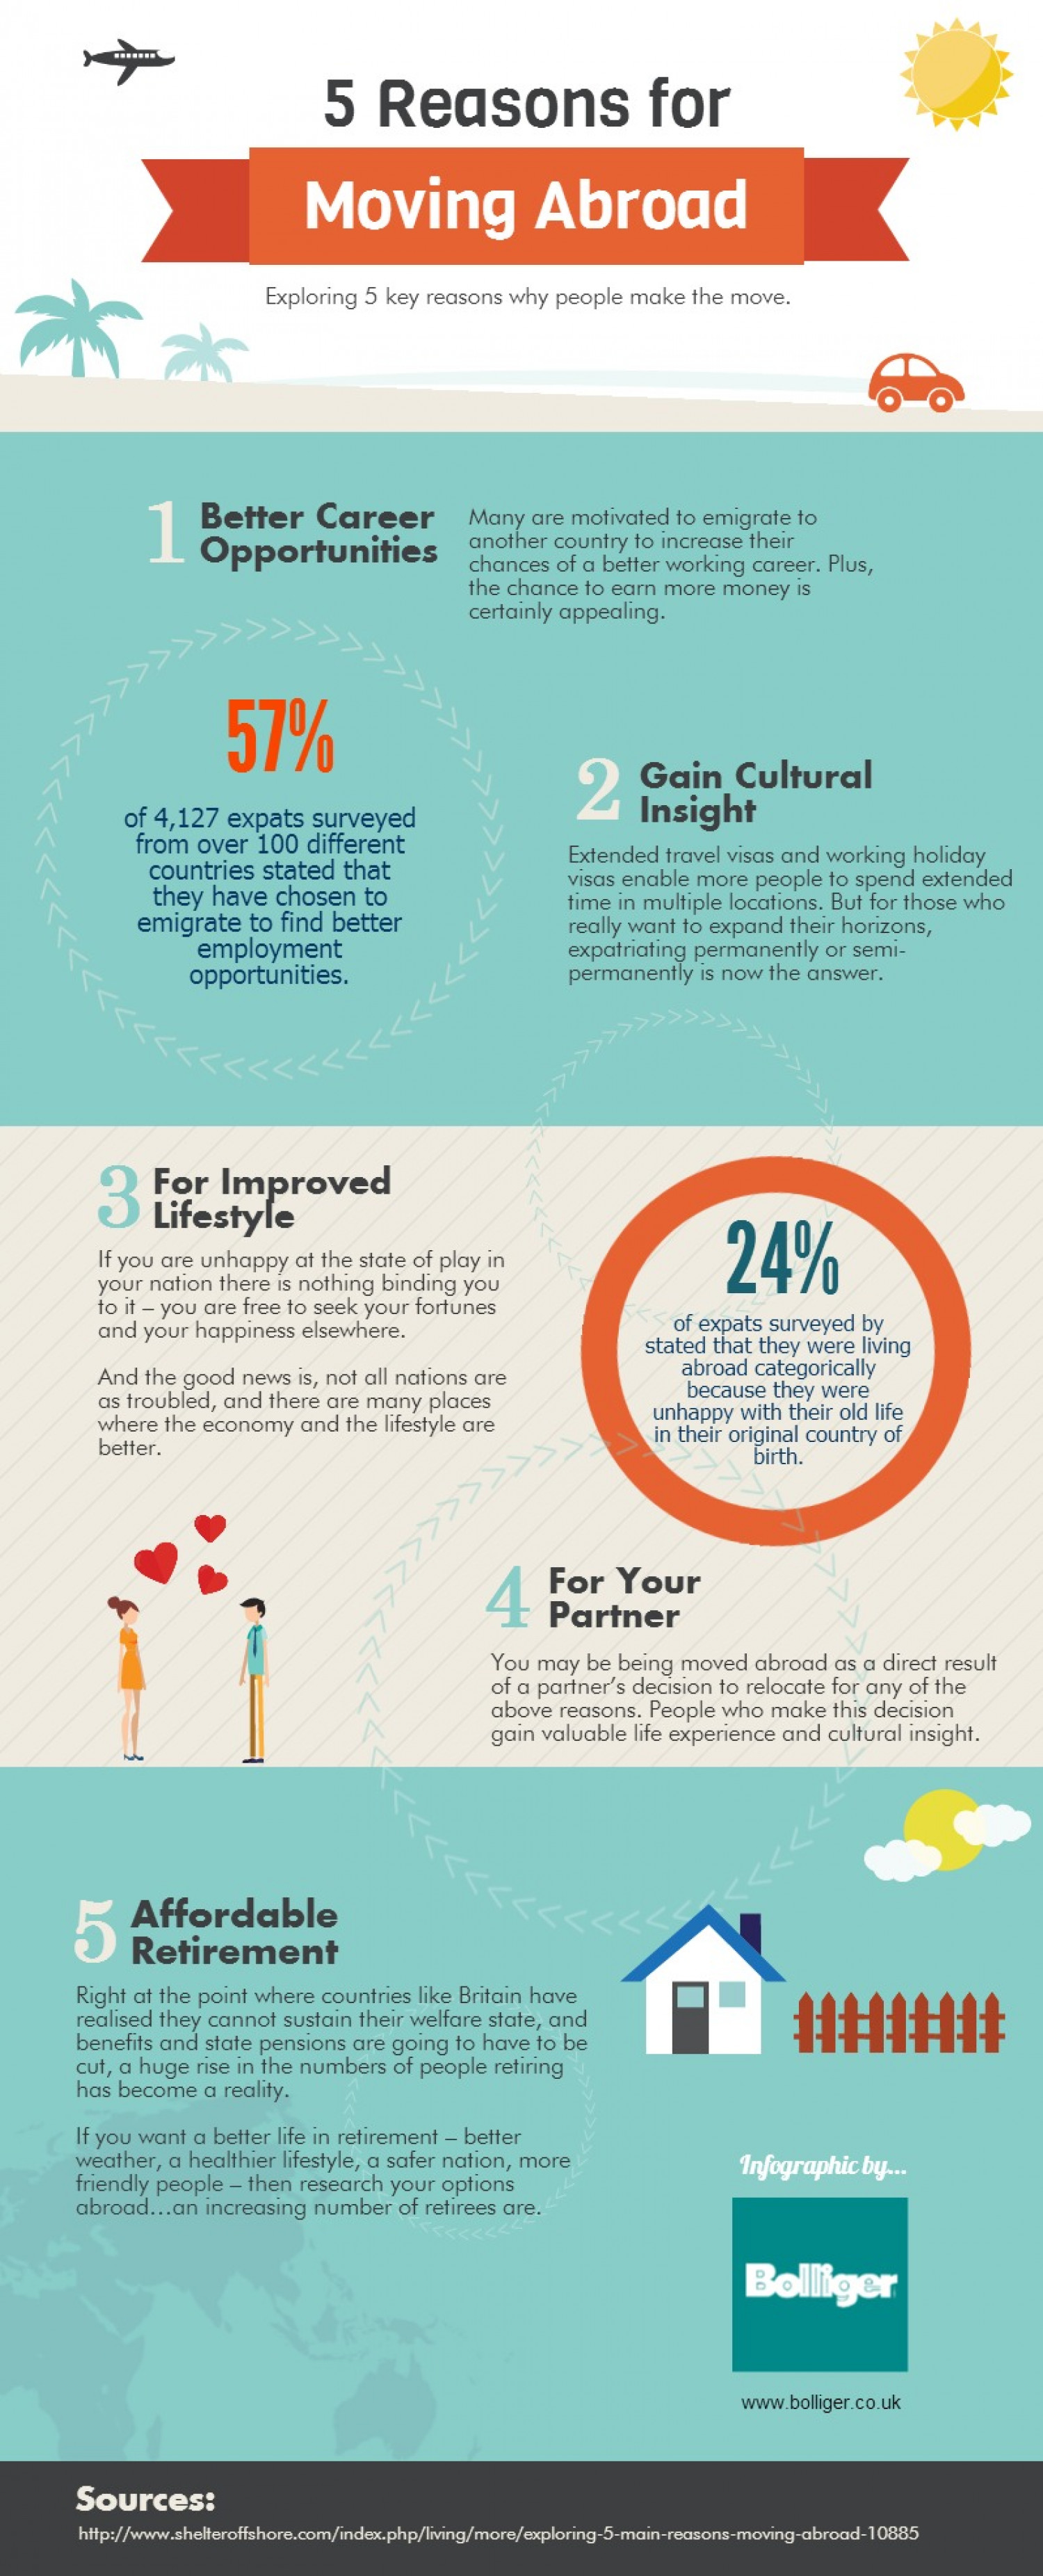 5 Reasons For Moving Abroad Infographic